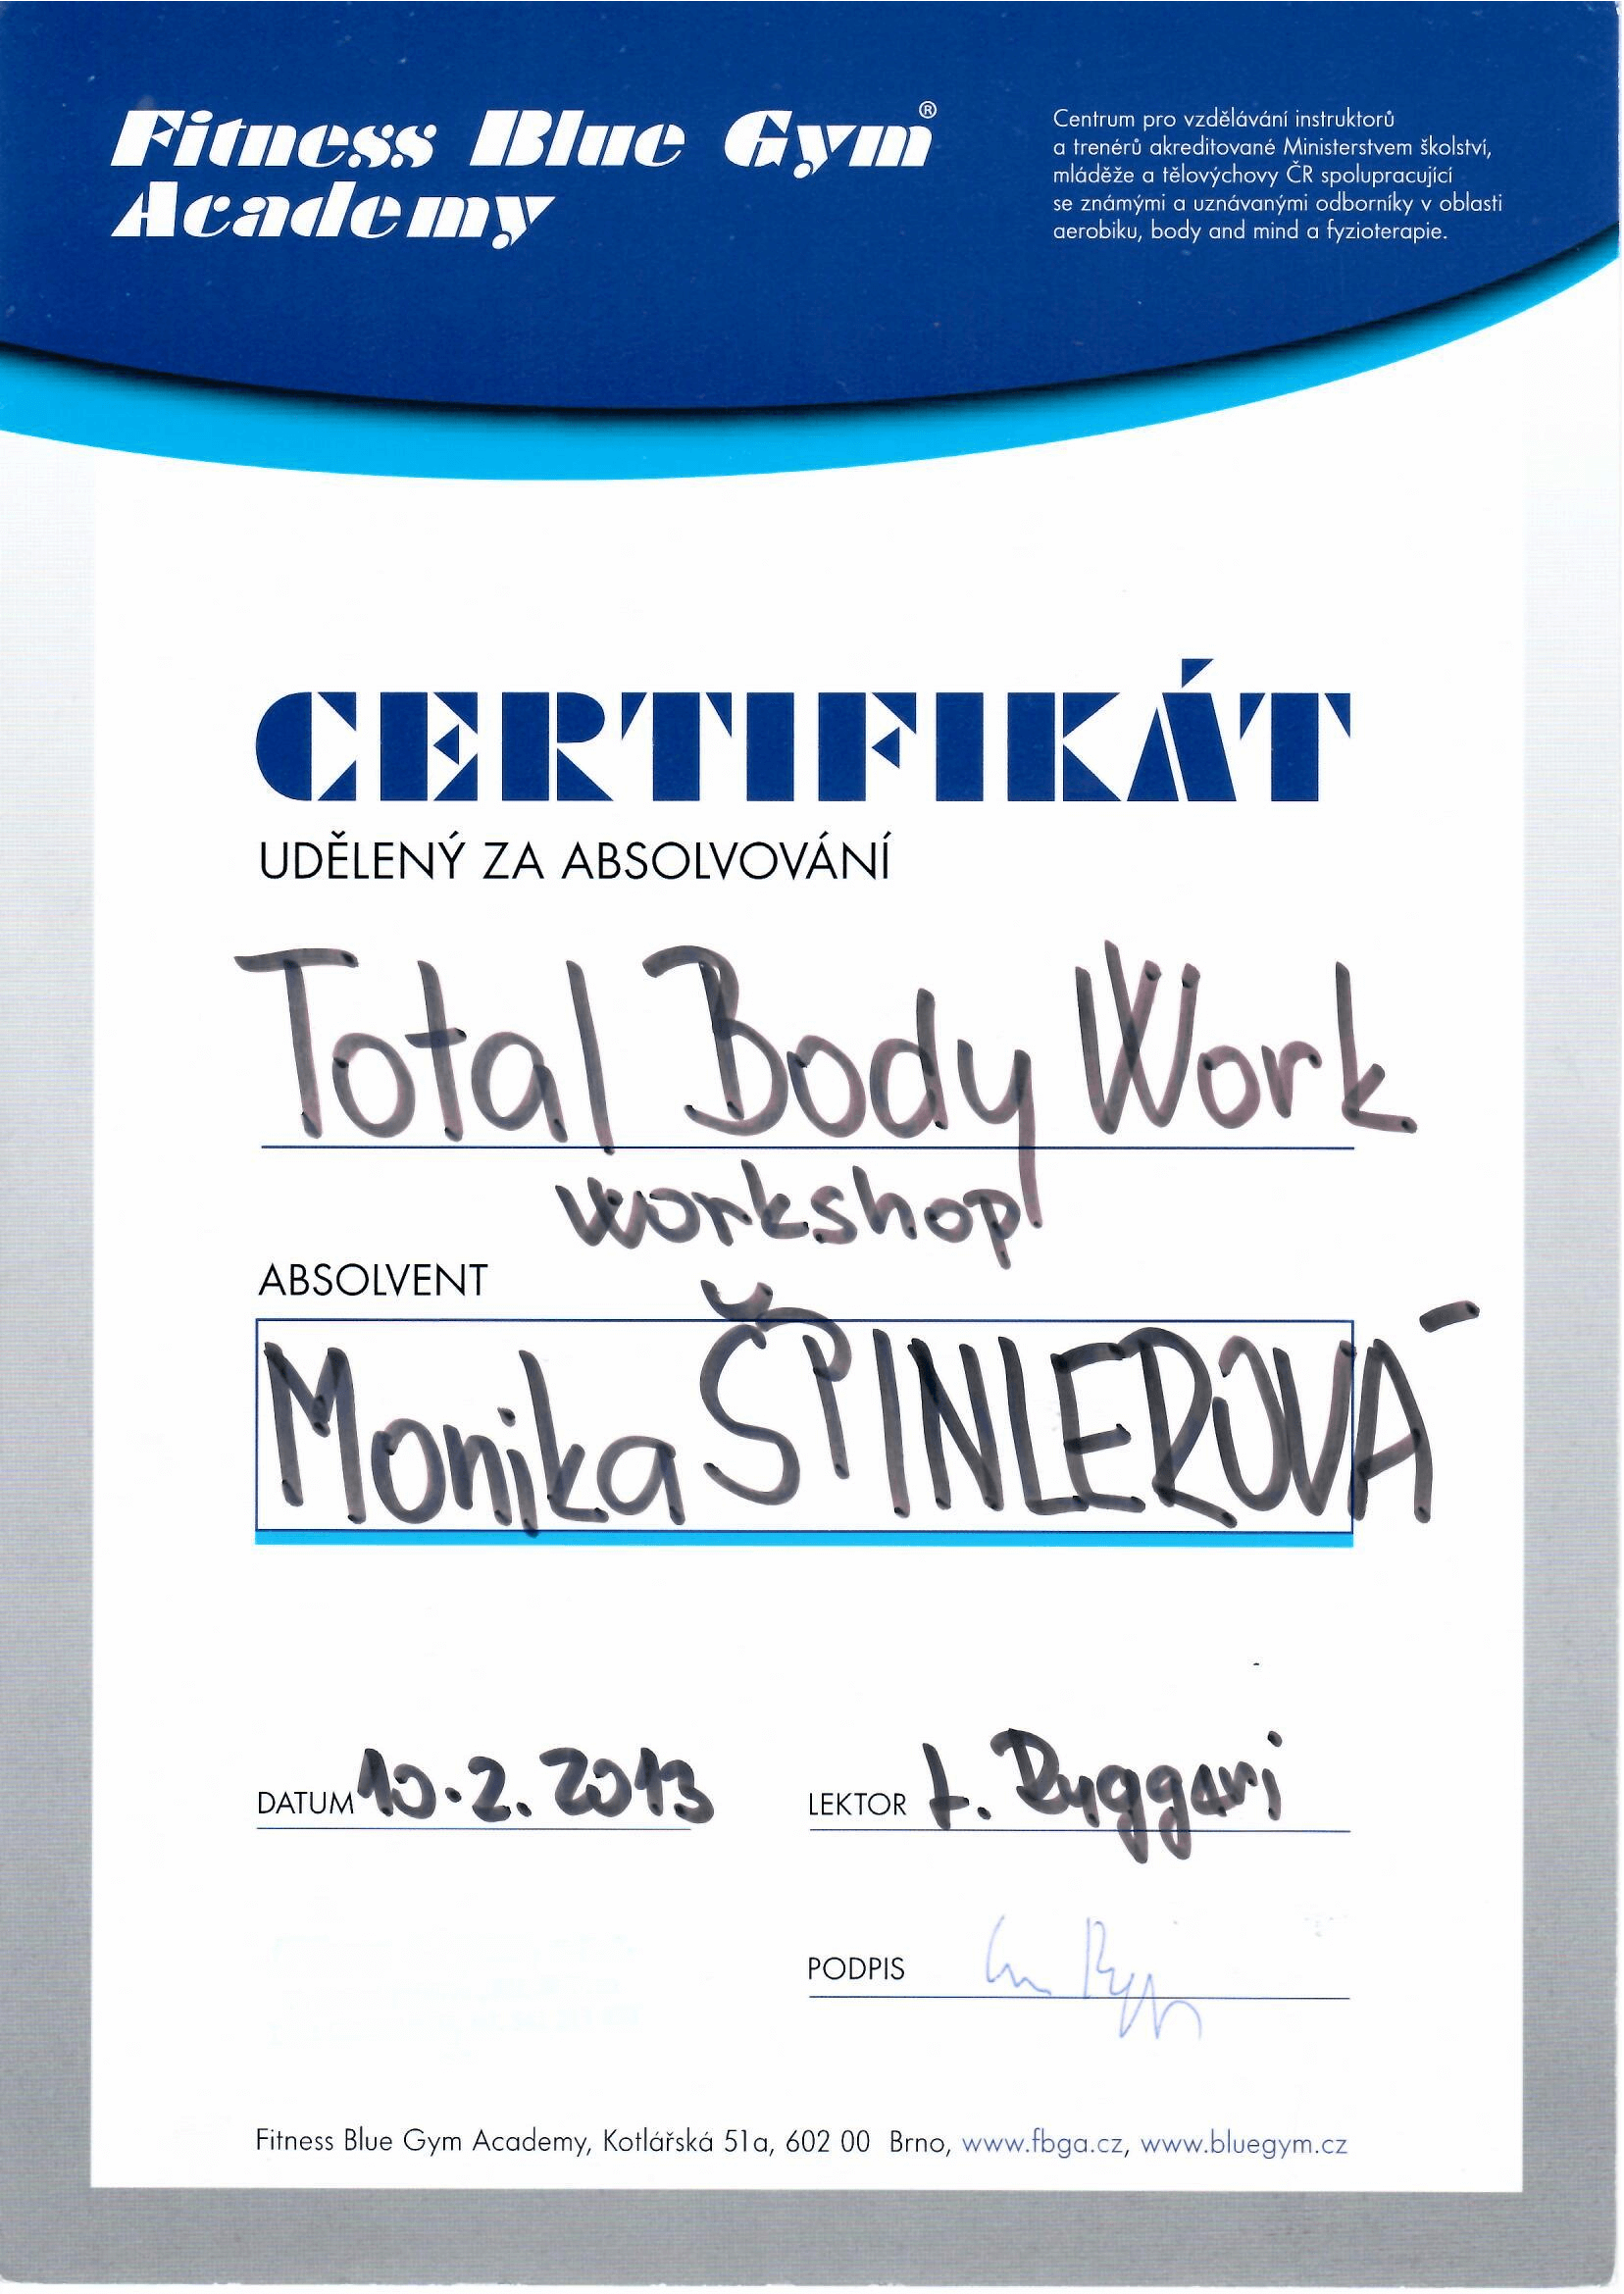 Certifikát Total Body Work